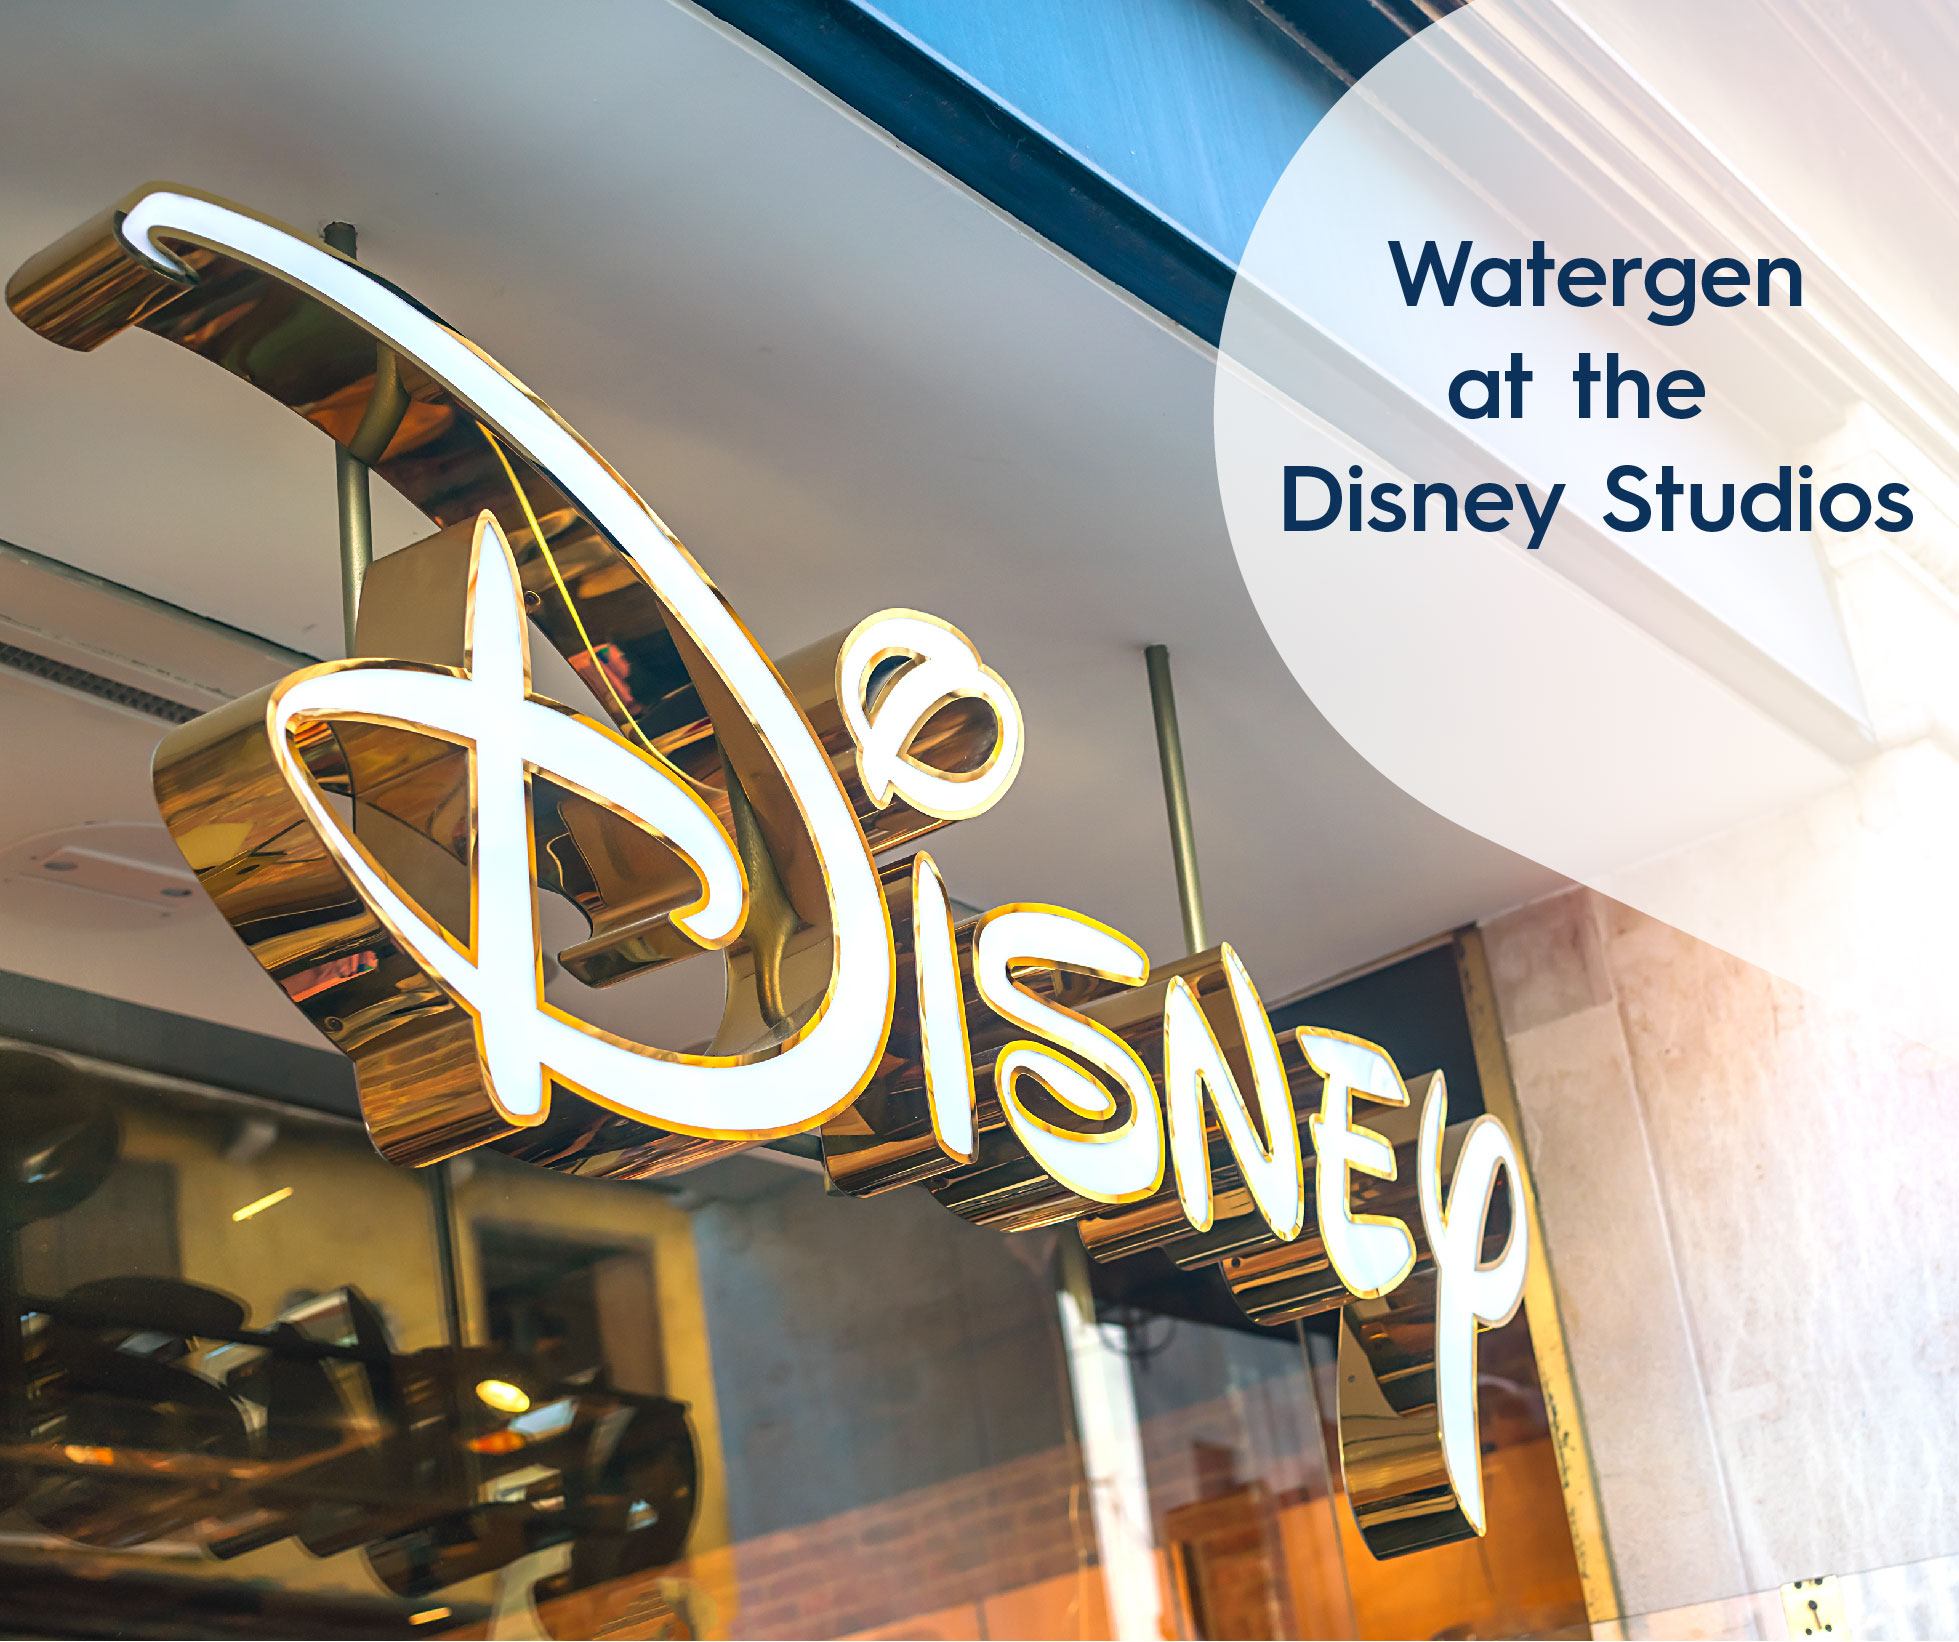 Watergen at the Walt Disney Studios